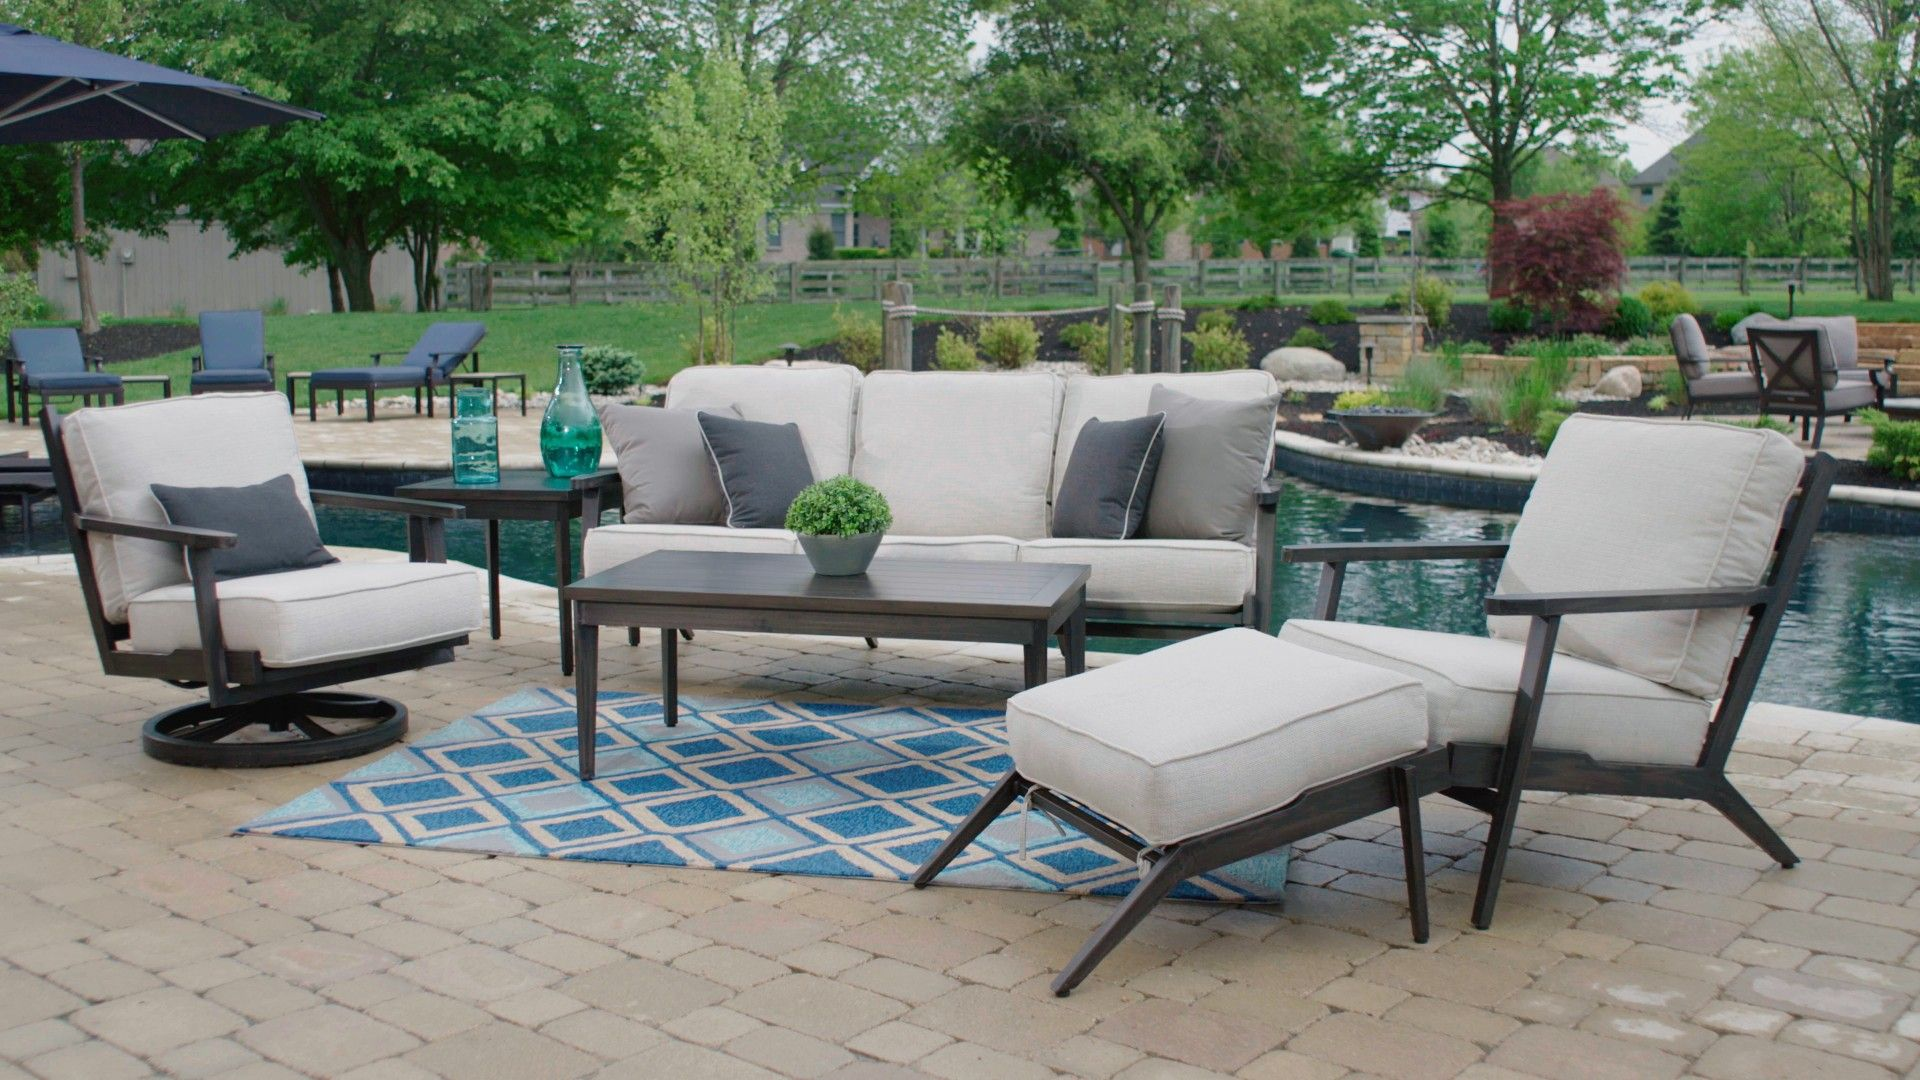 Patios Wickertommy Bahamaoutdoor Seatingfurniture